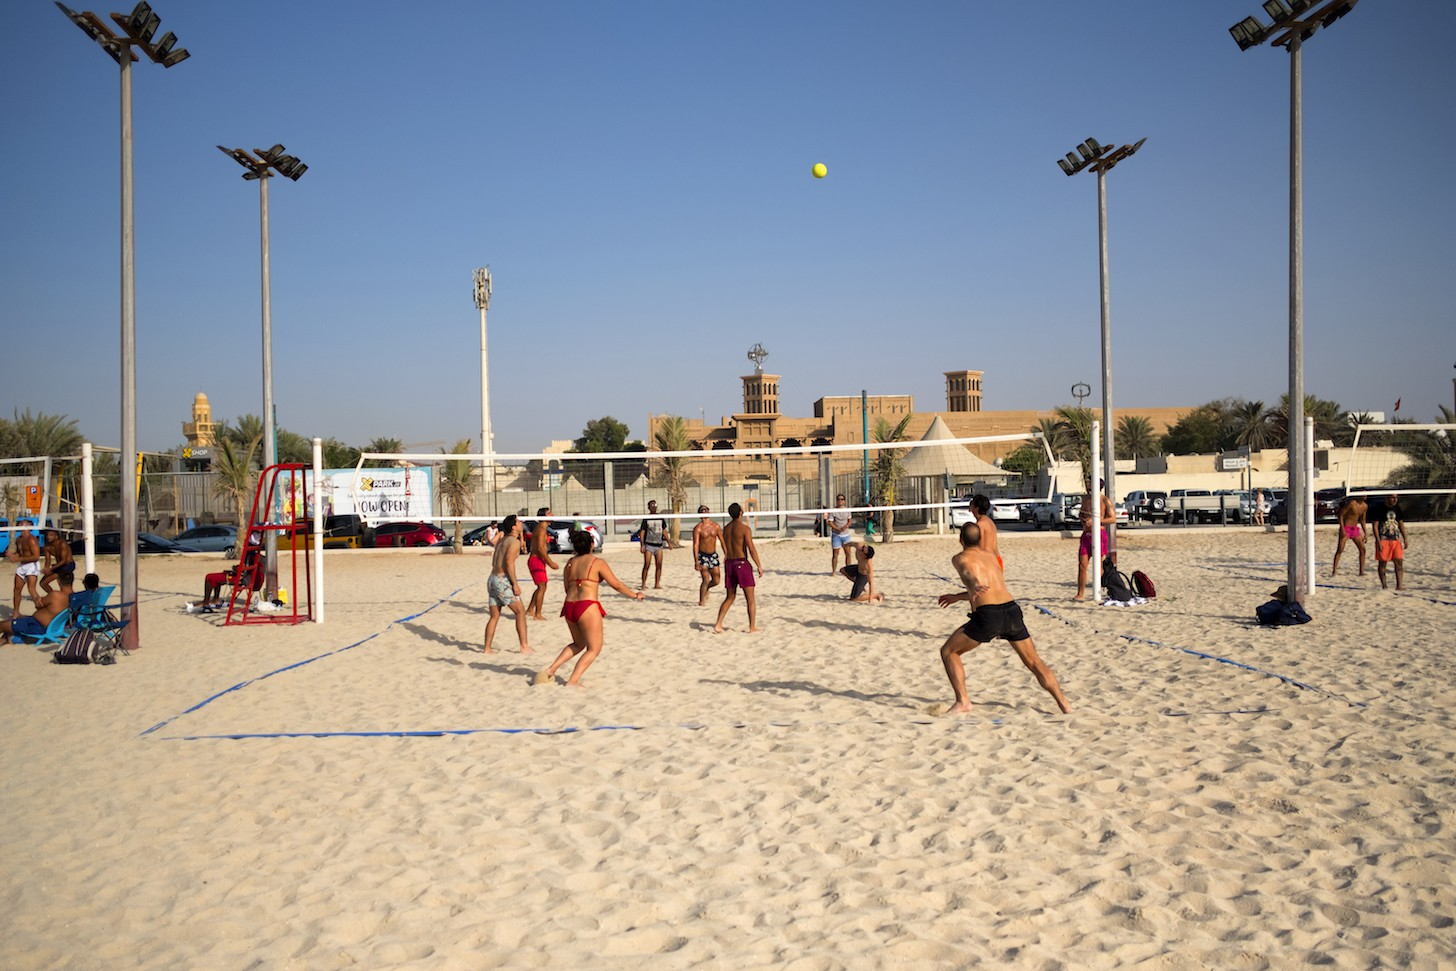 Things to do at Kite Beach   Volleyball   The Vacation Builder